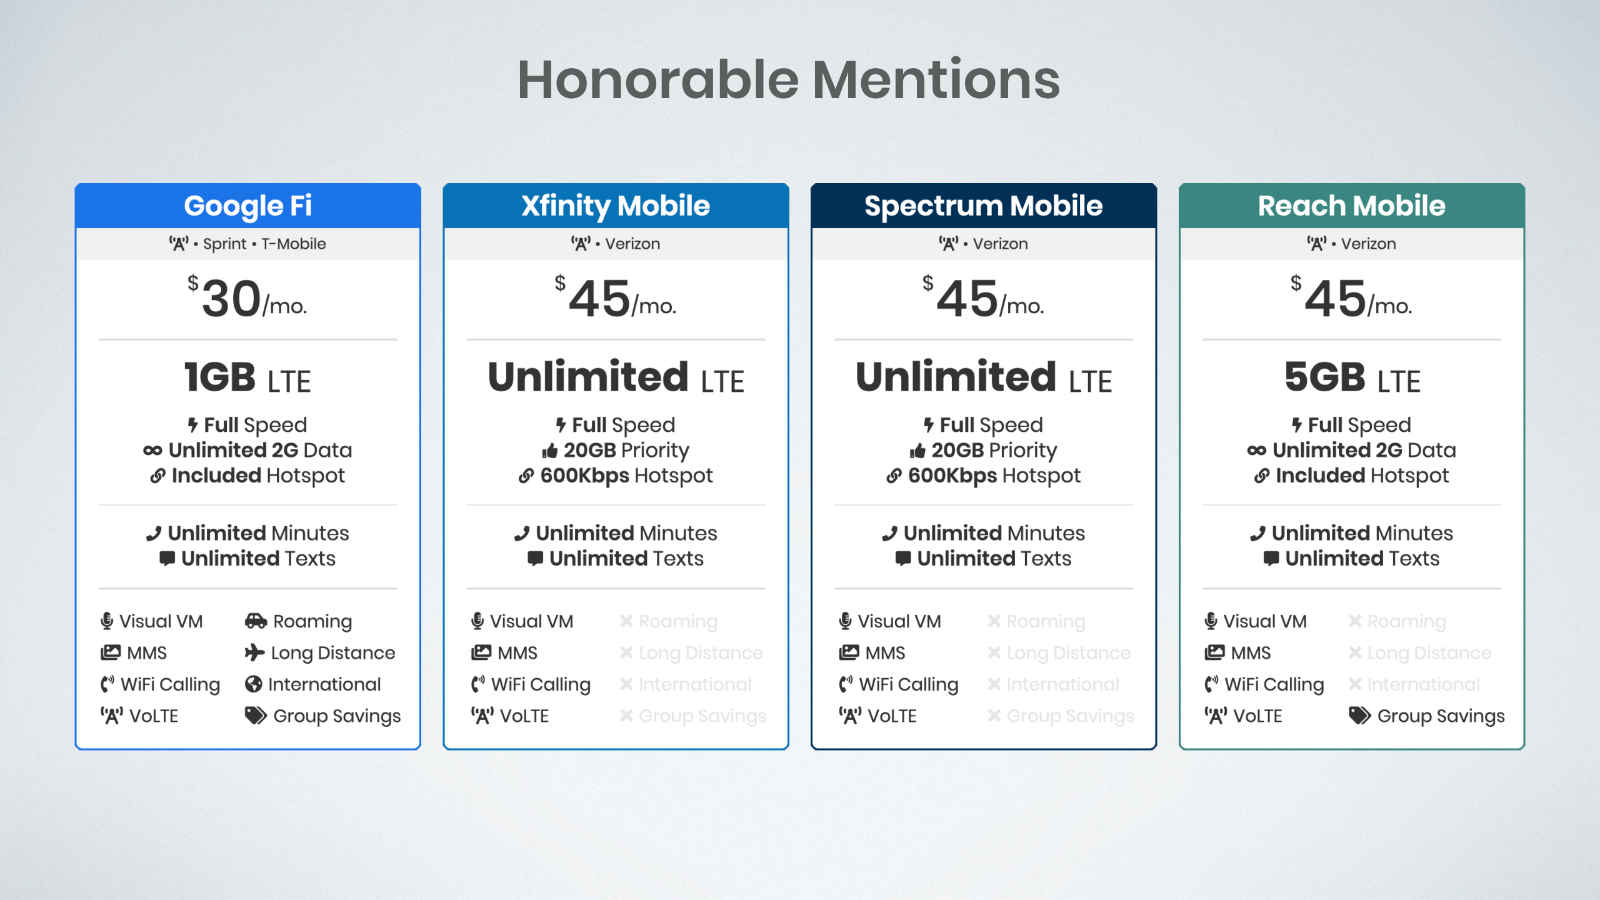 honorable mention cell phone plans